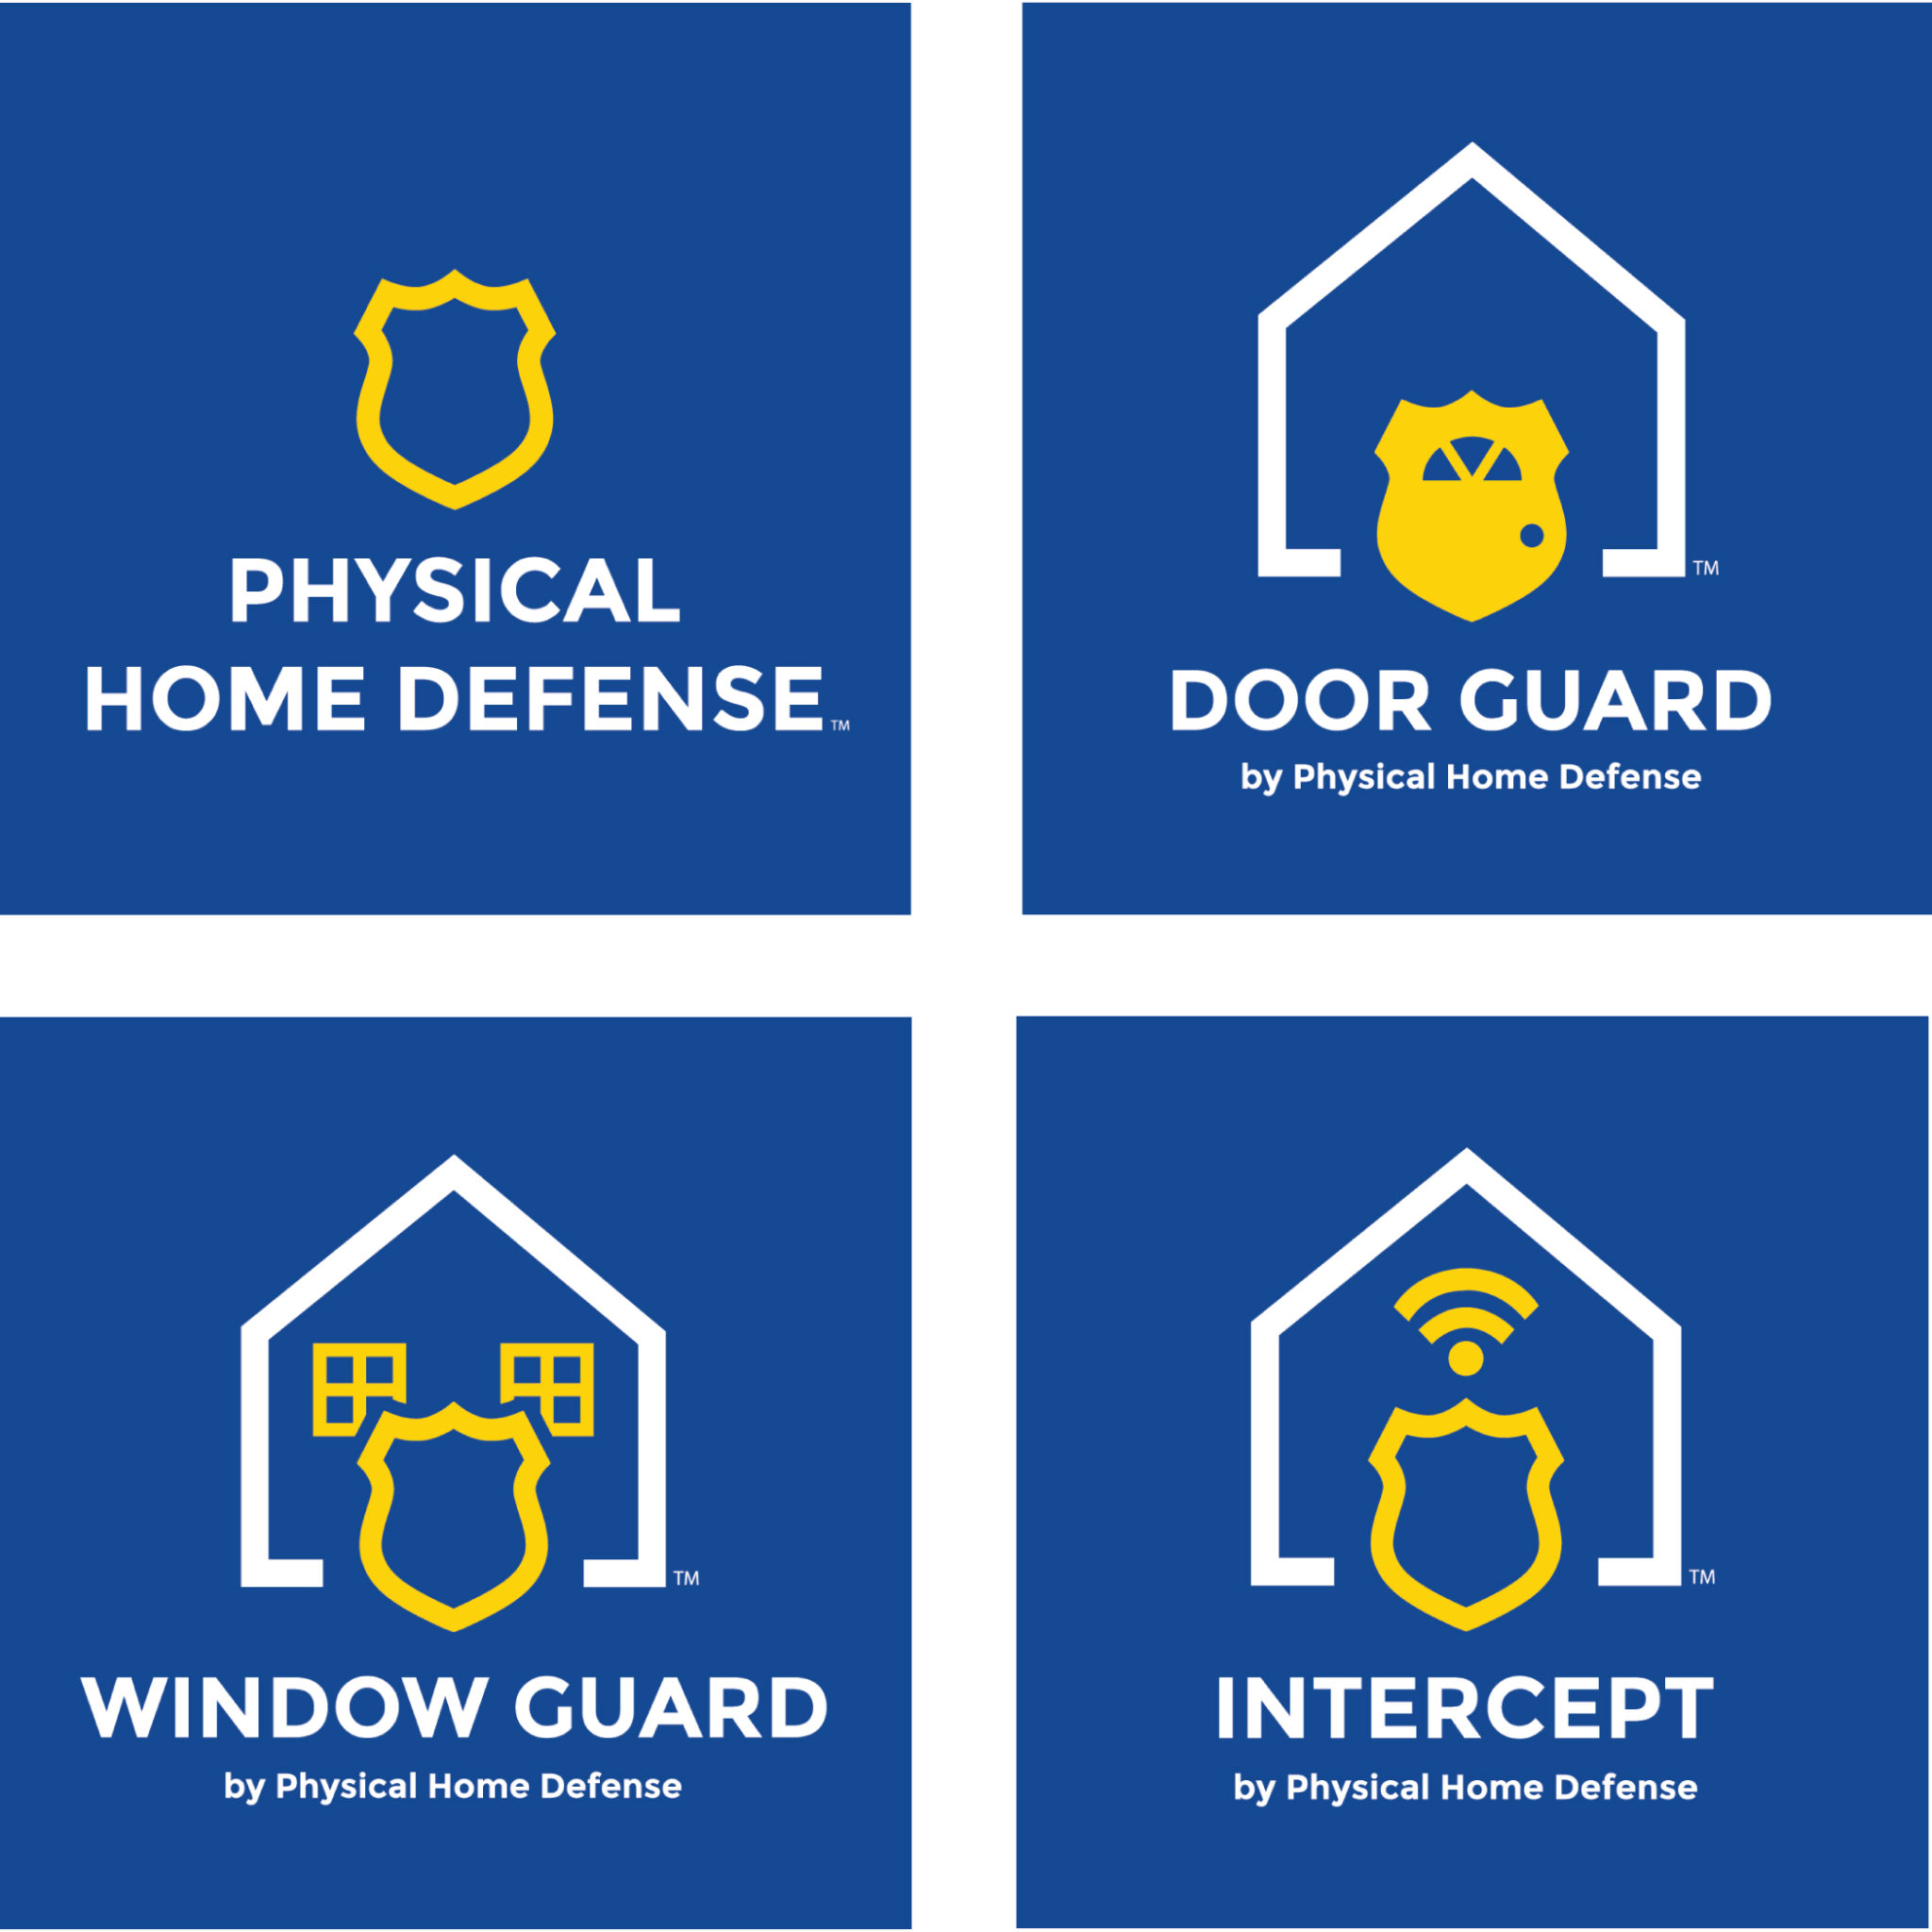 4 variations on Physical Home Defense logos